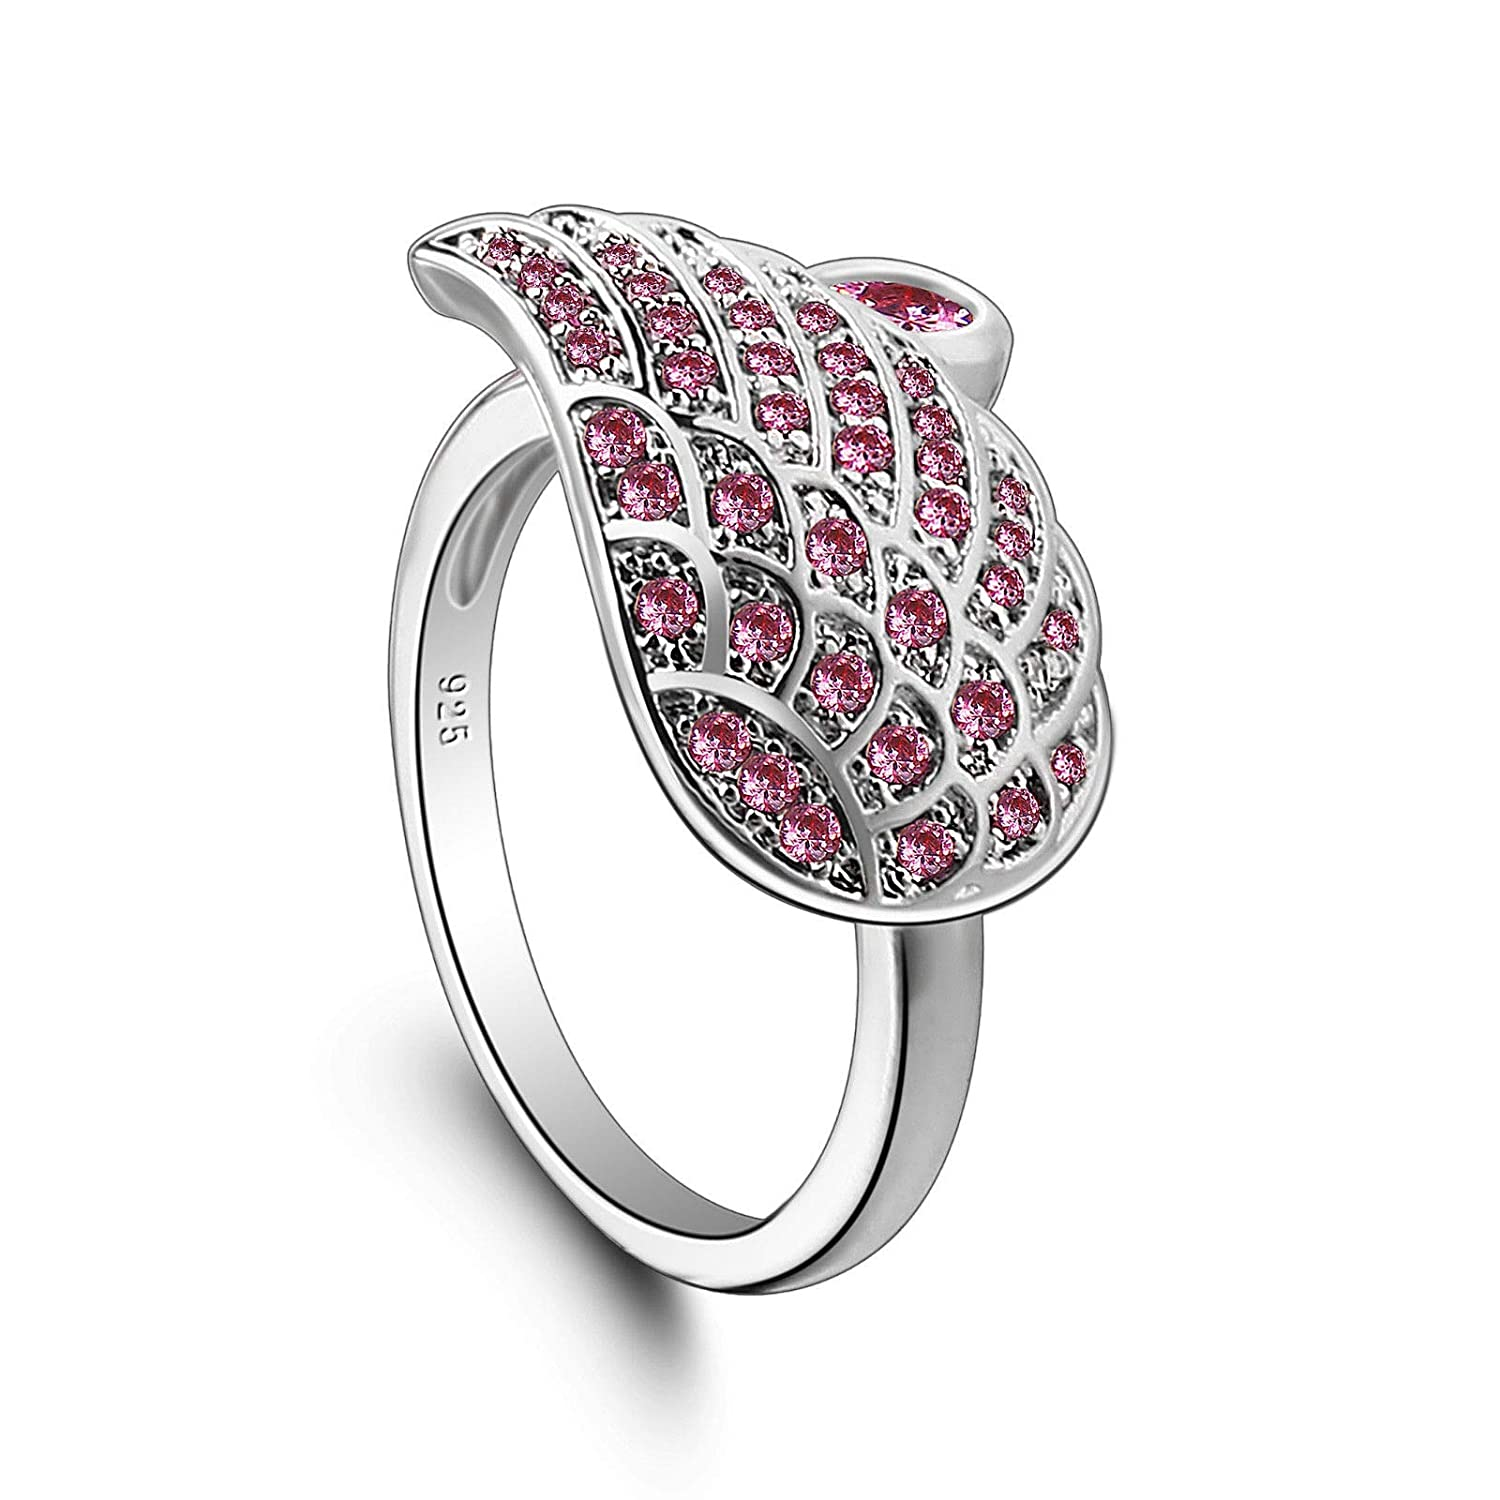 Gorgeous Silver Ring For Women Angle Wing Banquet Jewelry Pink Topaz Gemstone